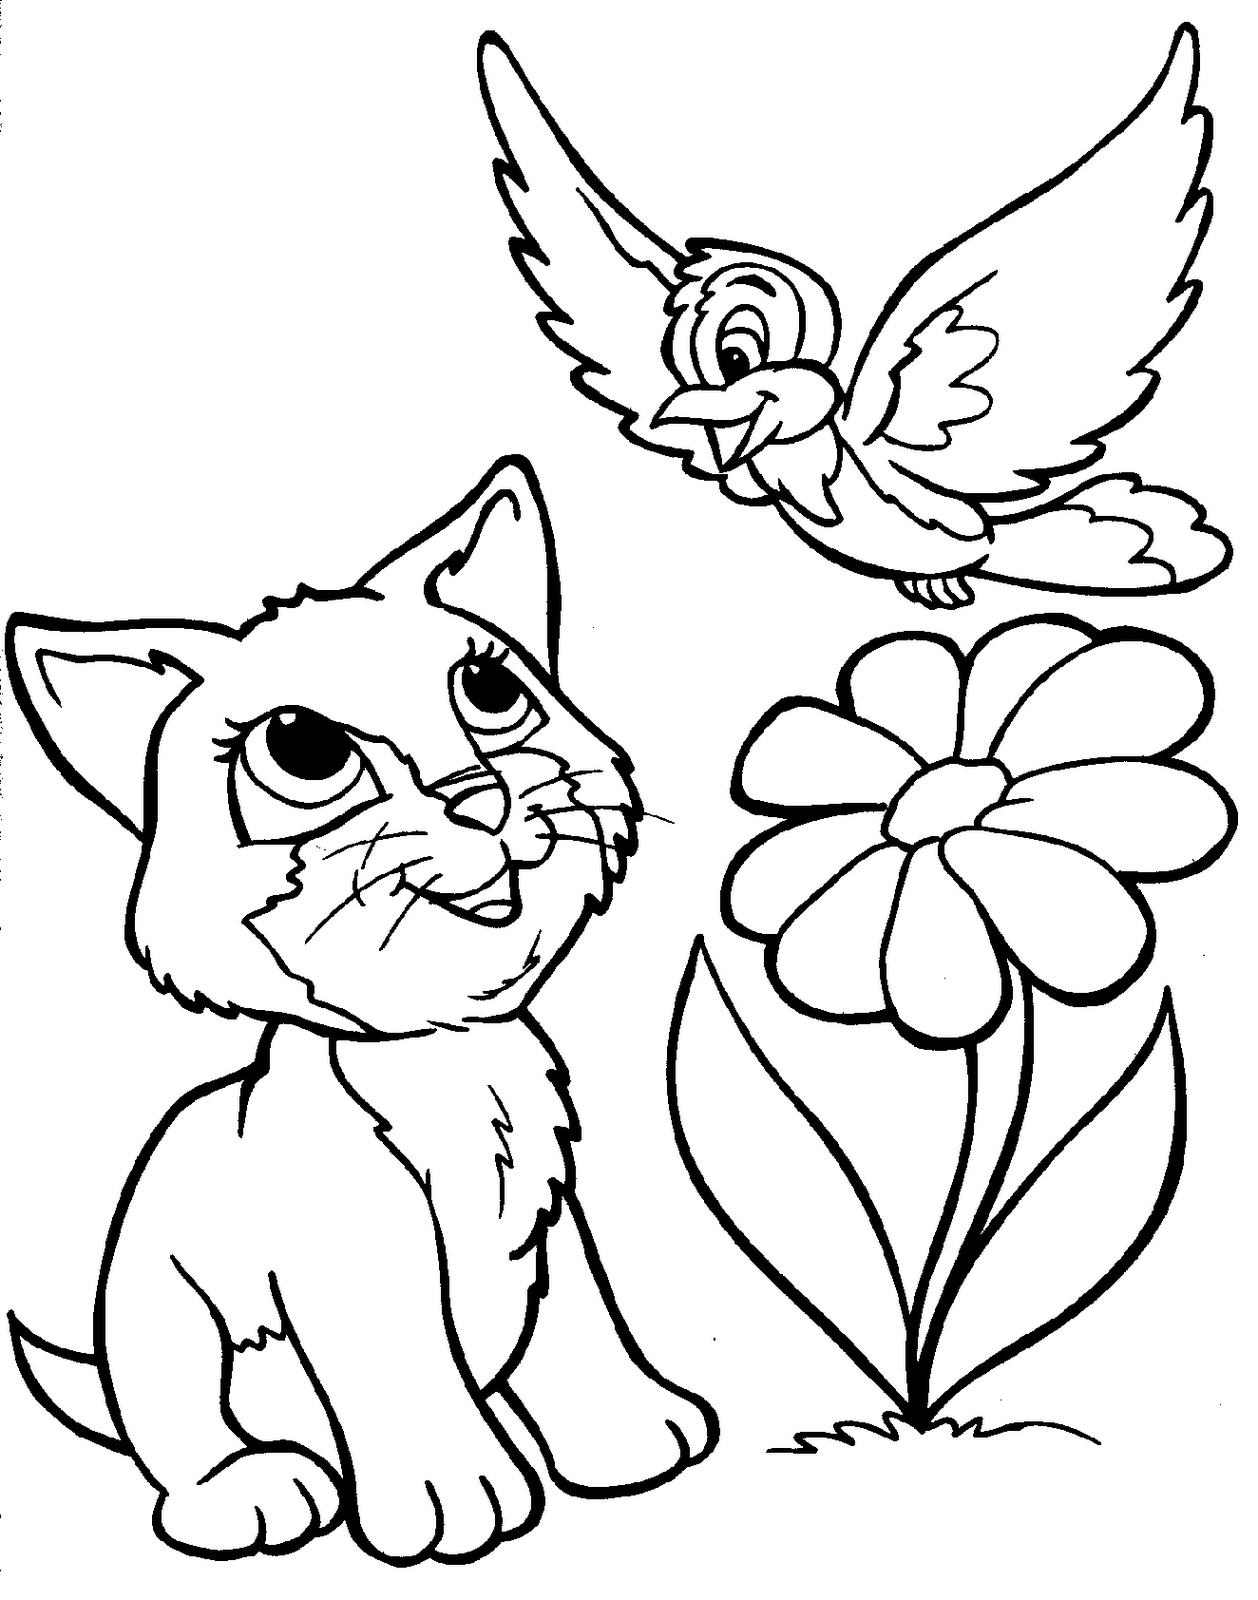 coloring animal for kids animal coloring pages easy coloring home animal for kids coloring